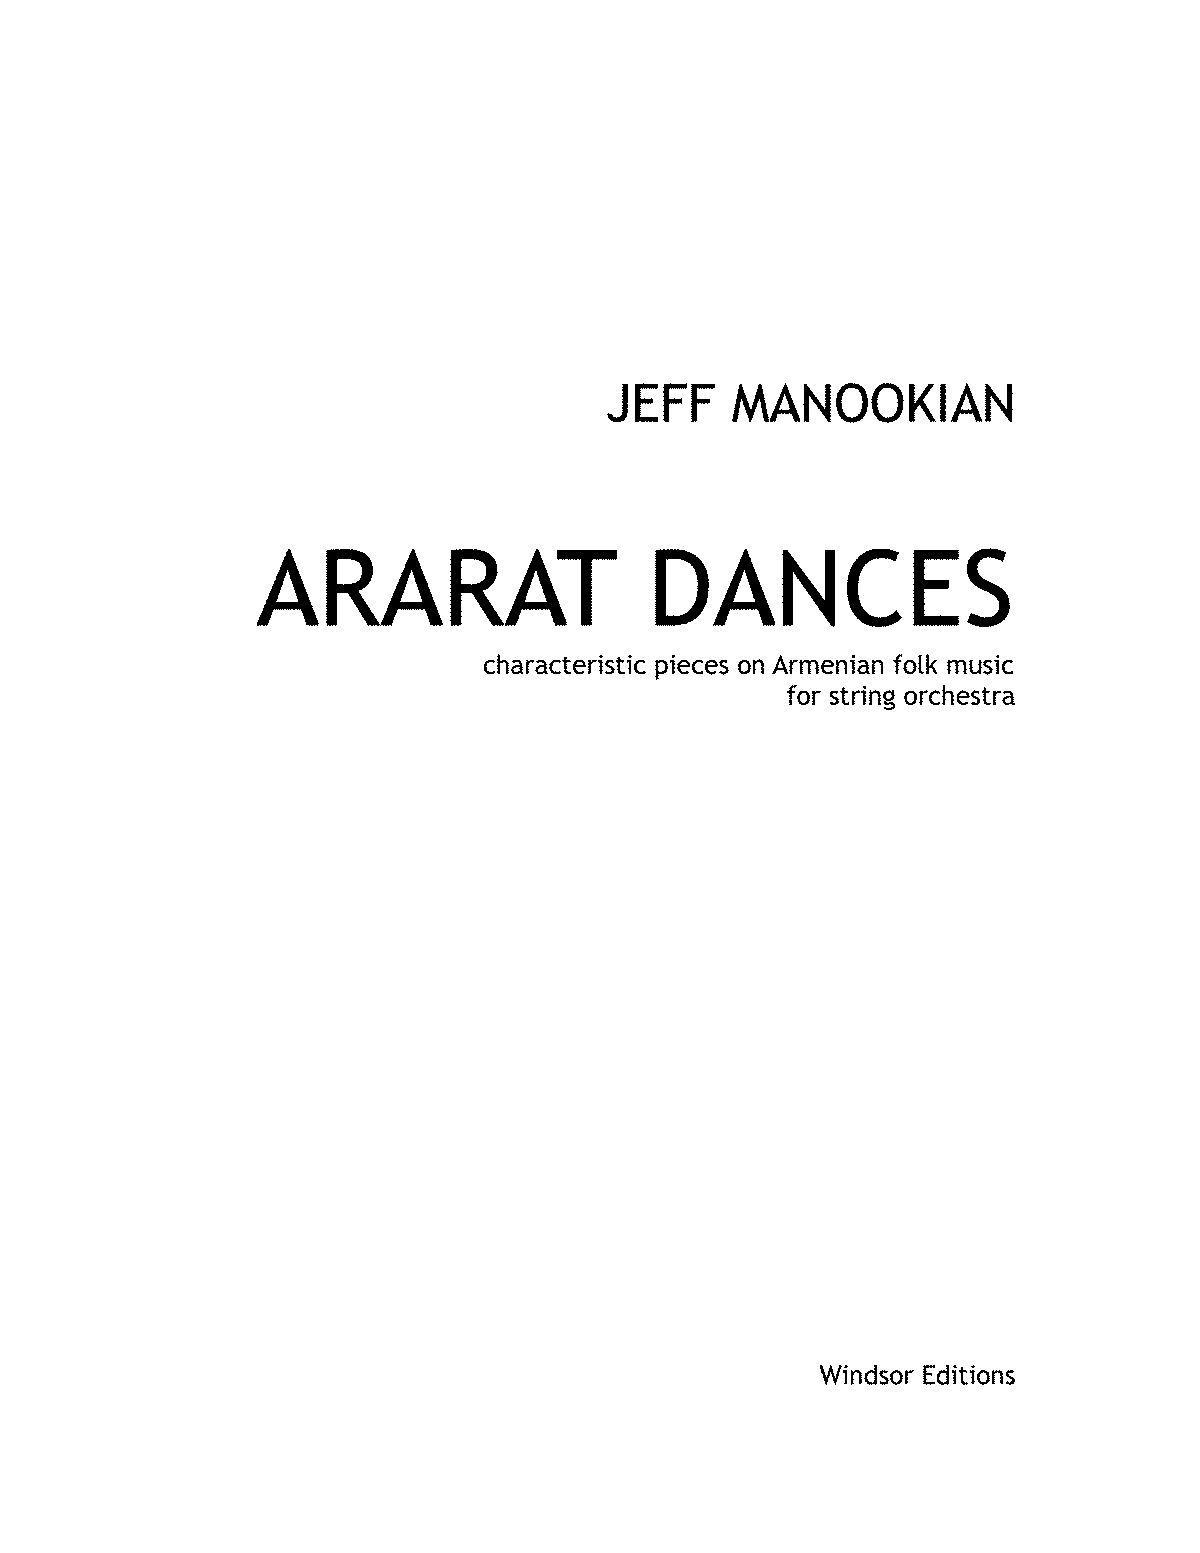 PMLP422405-ARARAT DANCES Full Score.pdf